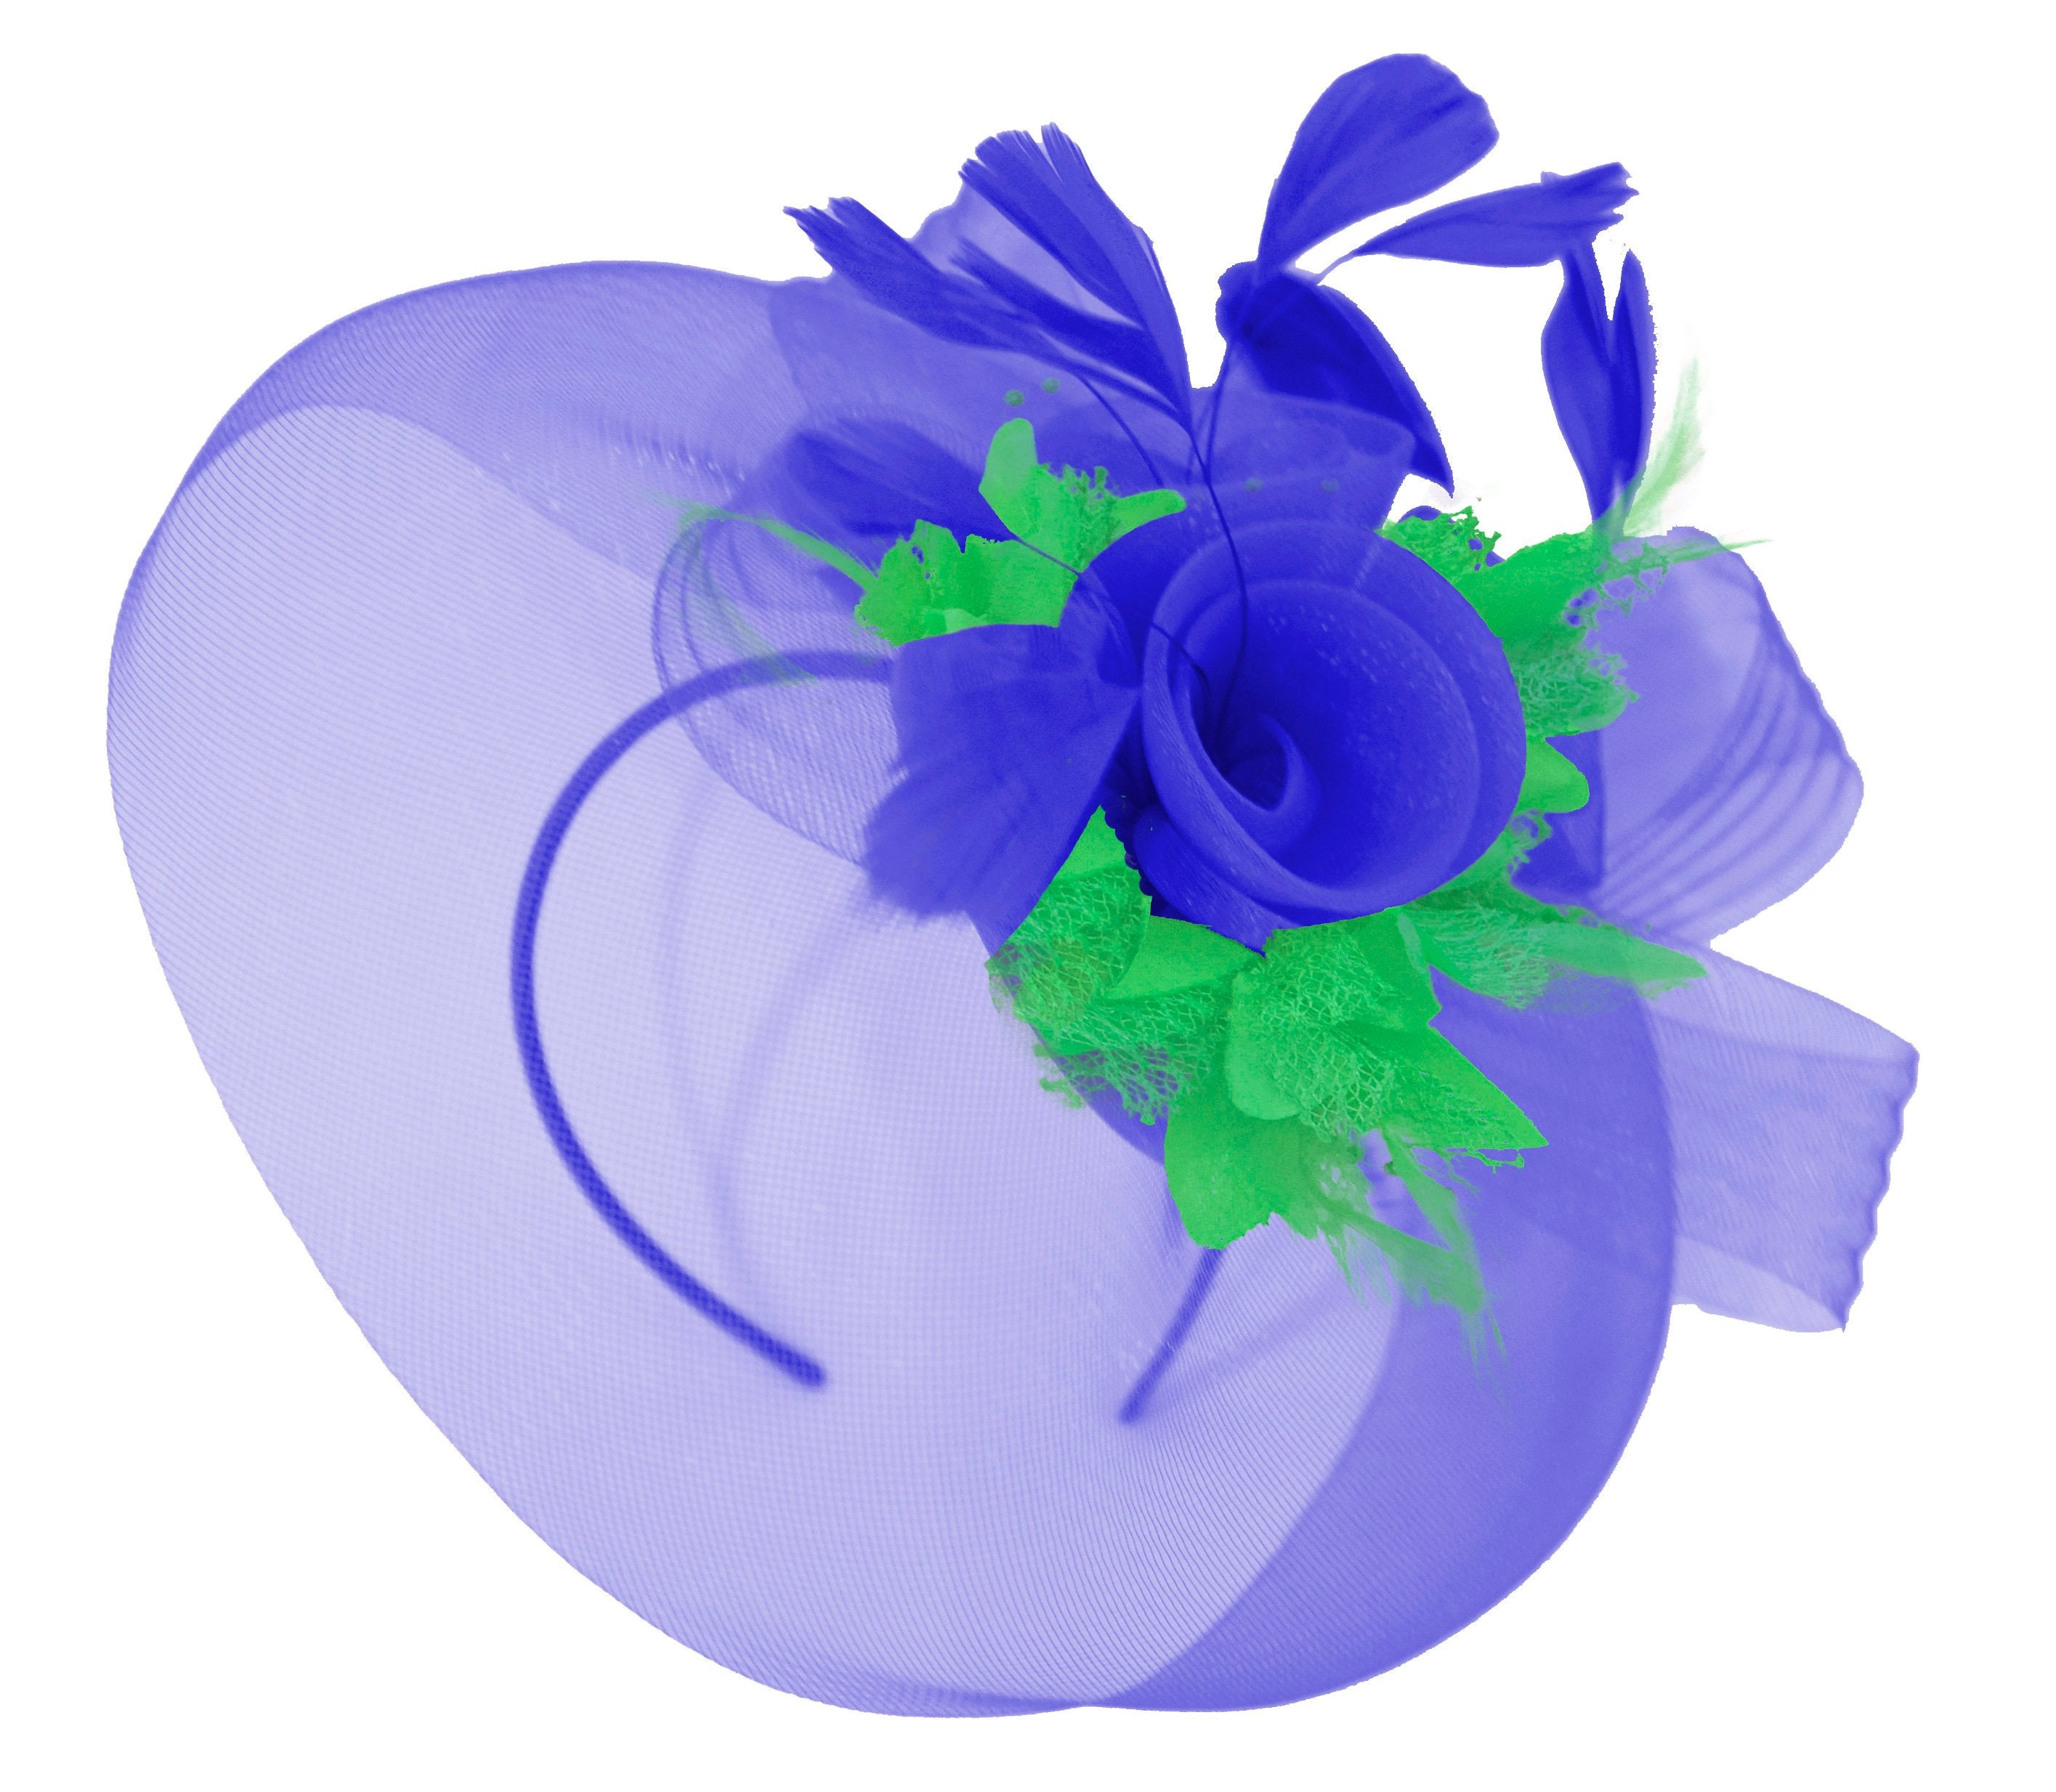 Caprilite Big Royal Blue and Grass Green Fascinator Hat Veil Net Hair Clip Ascot Derby Races Wedding Headband Feather Flower